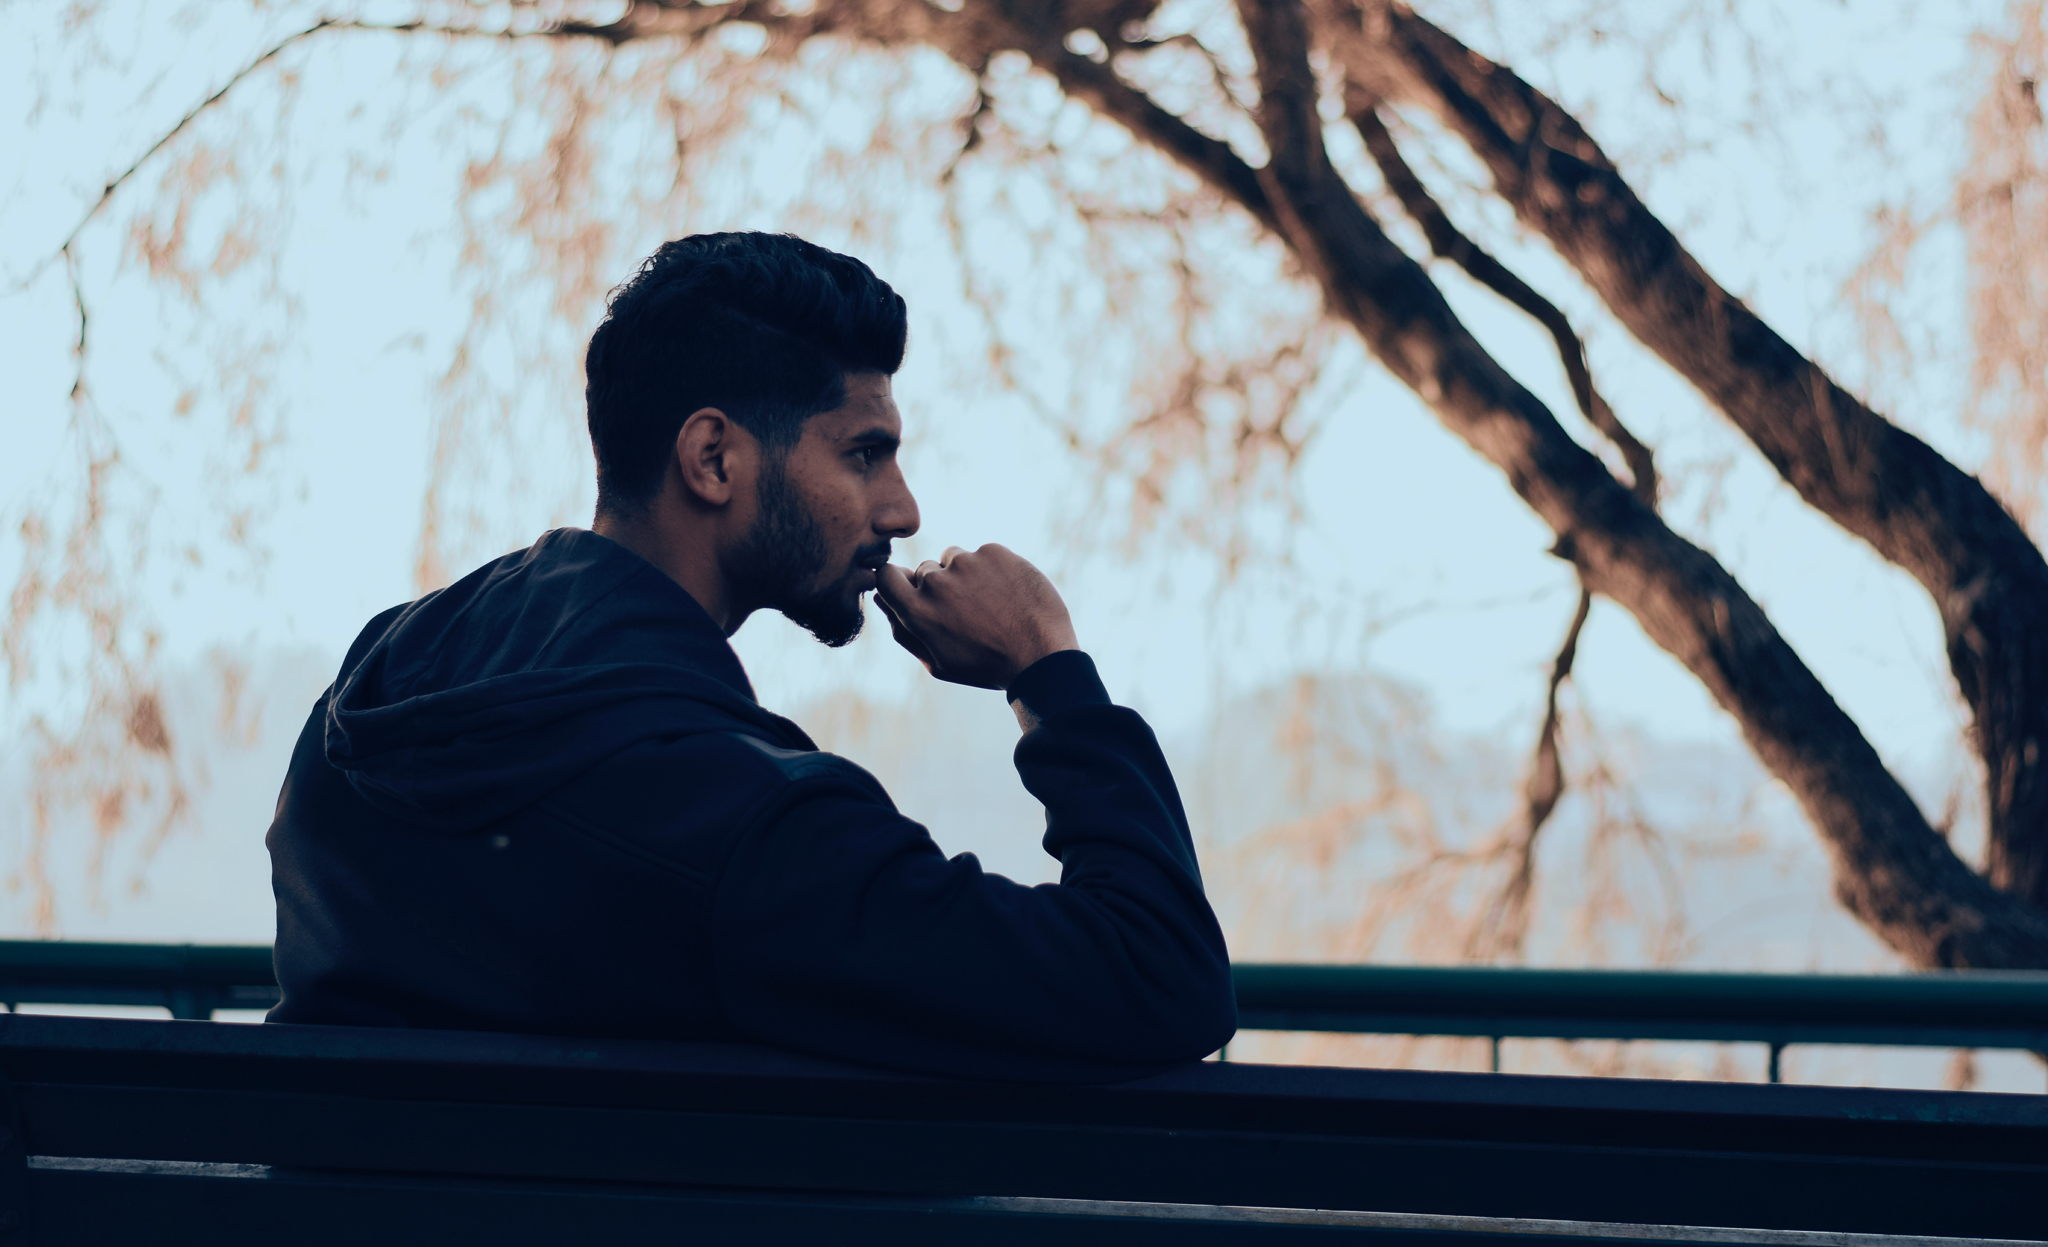 Silhouette of a man with a beard sitting on a park bench with a pensive look on his face and his hand on his chin.